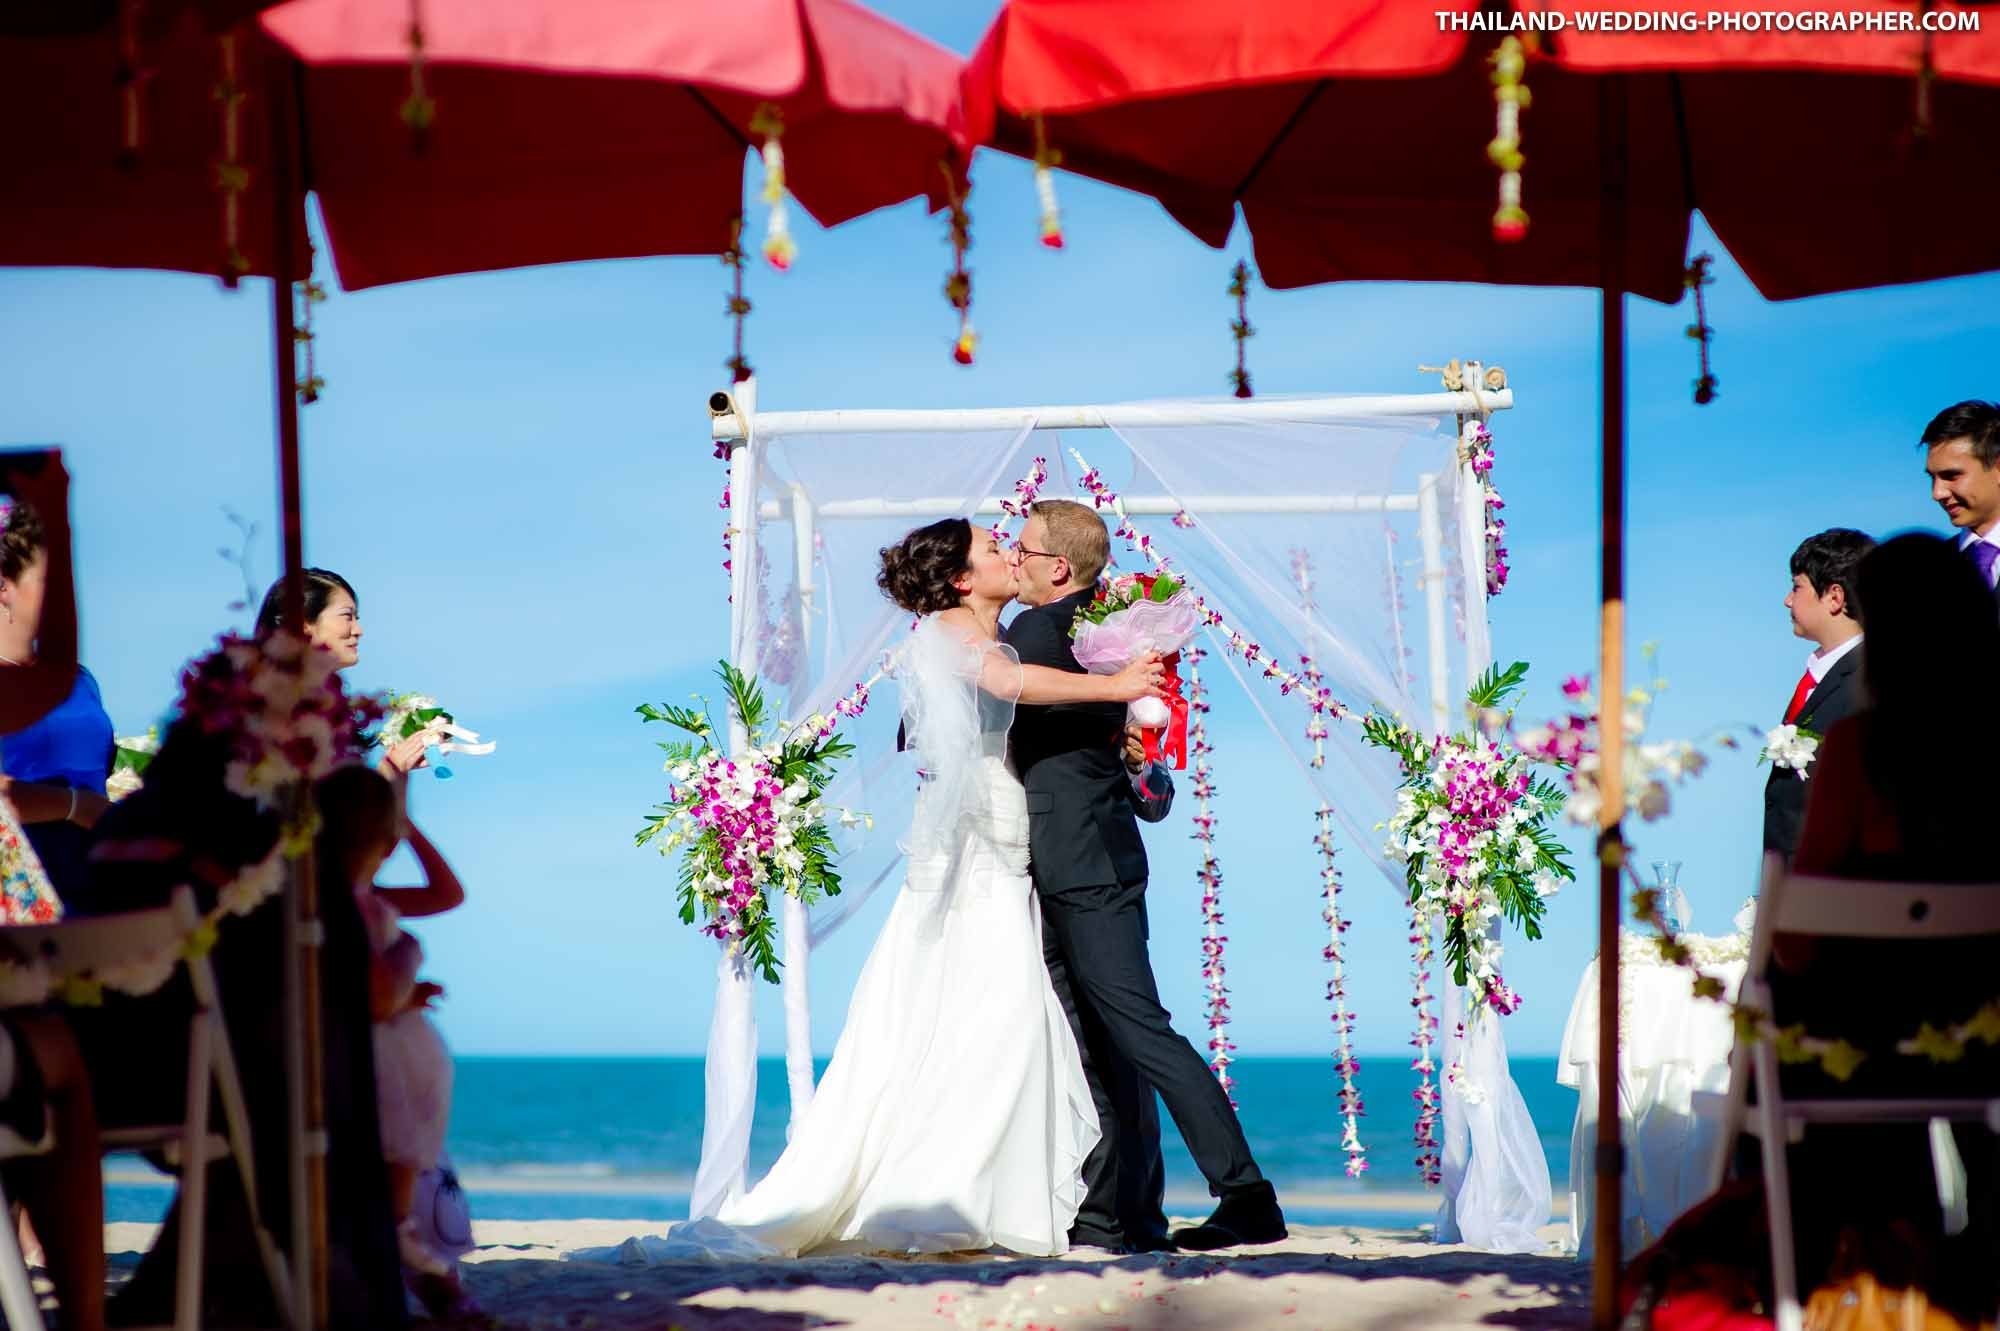 Destination wedding at The Palayana Hua Hin